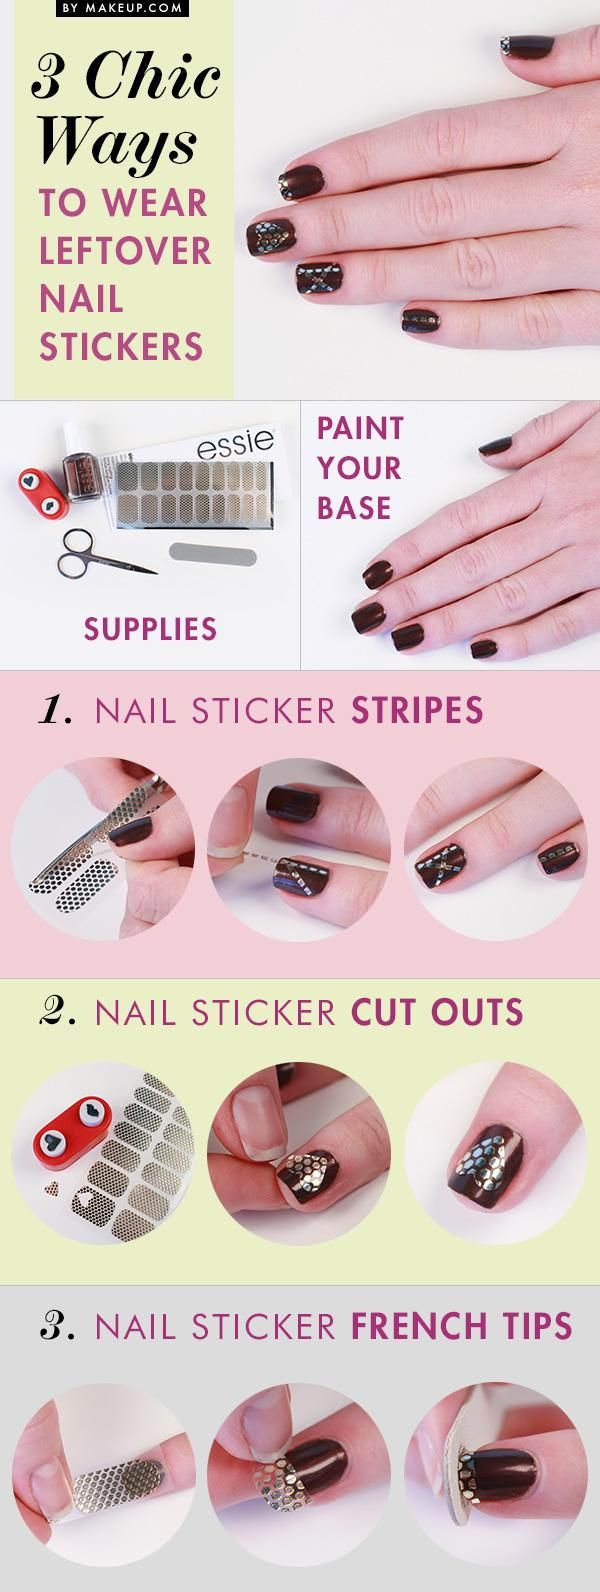 New ideas! Jamberry nails https://kellyjohnson64.jamberry.com/profile/